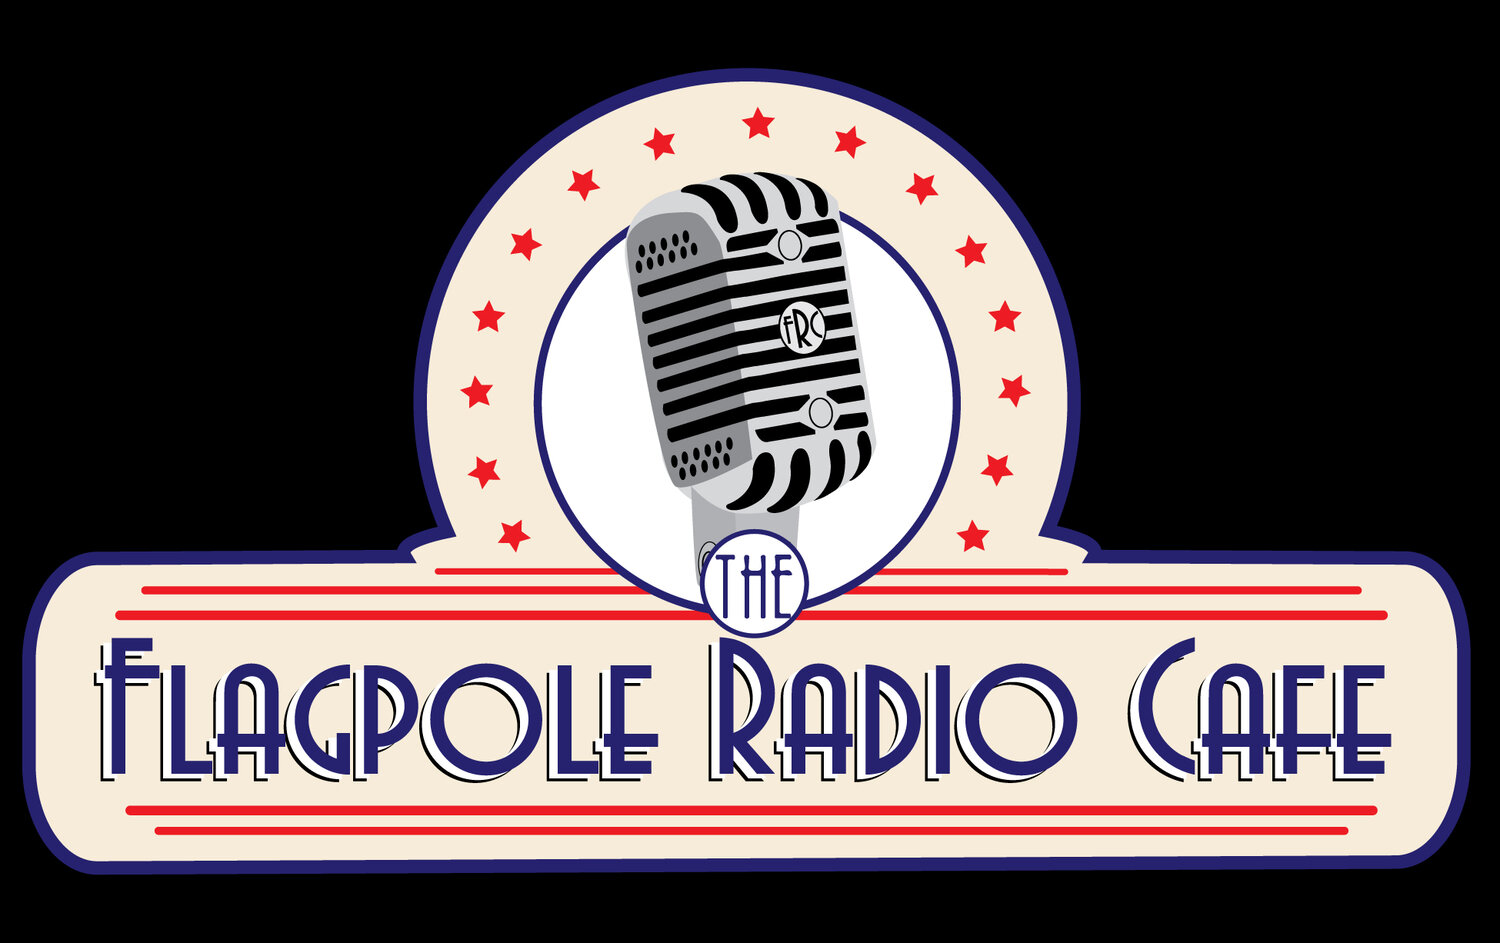 The Flagpole Radio Café